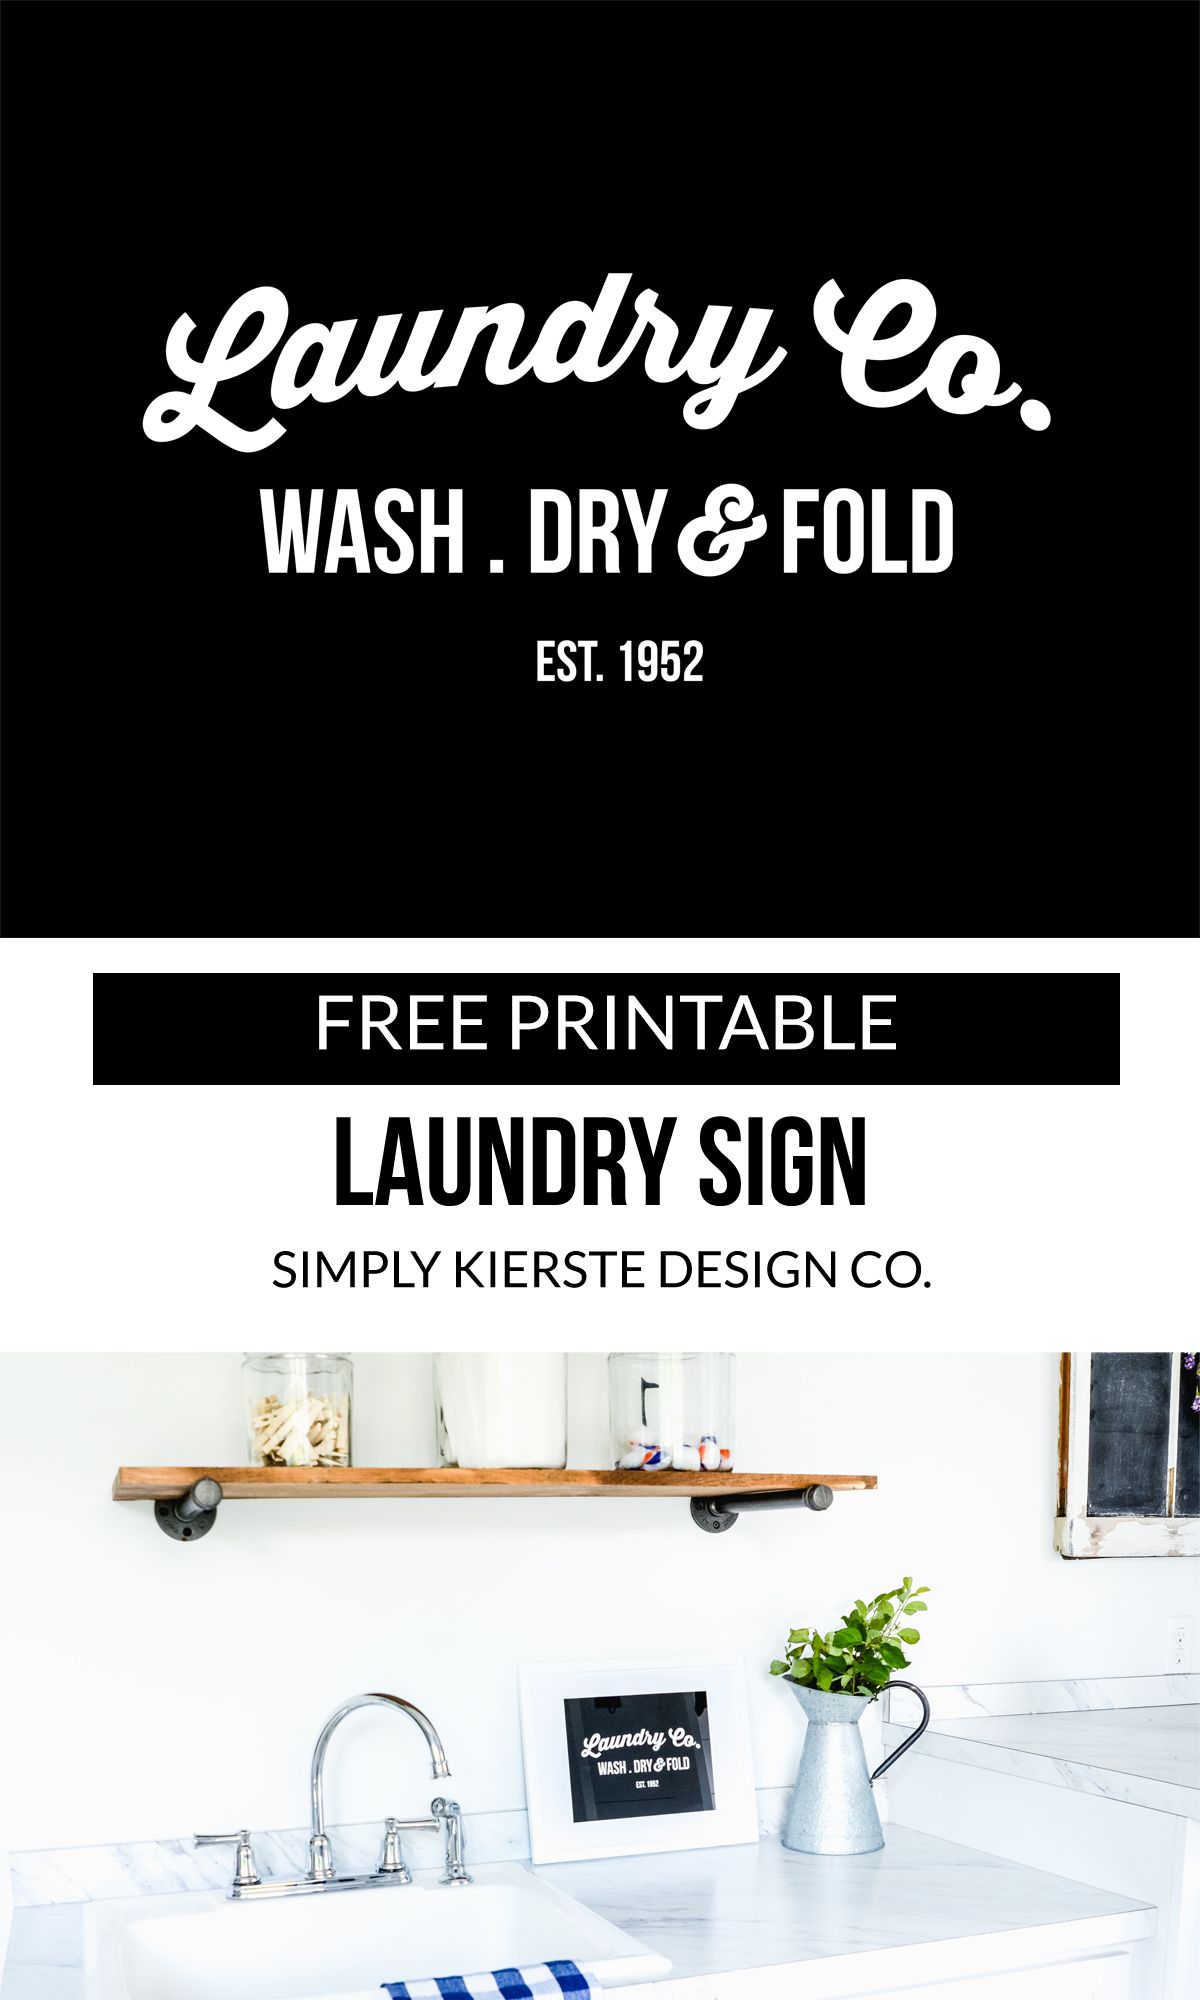 Free Printable Laundry Sign